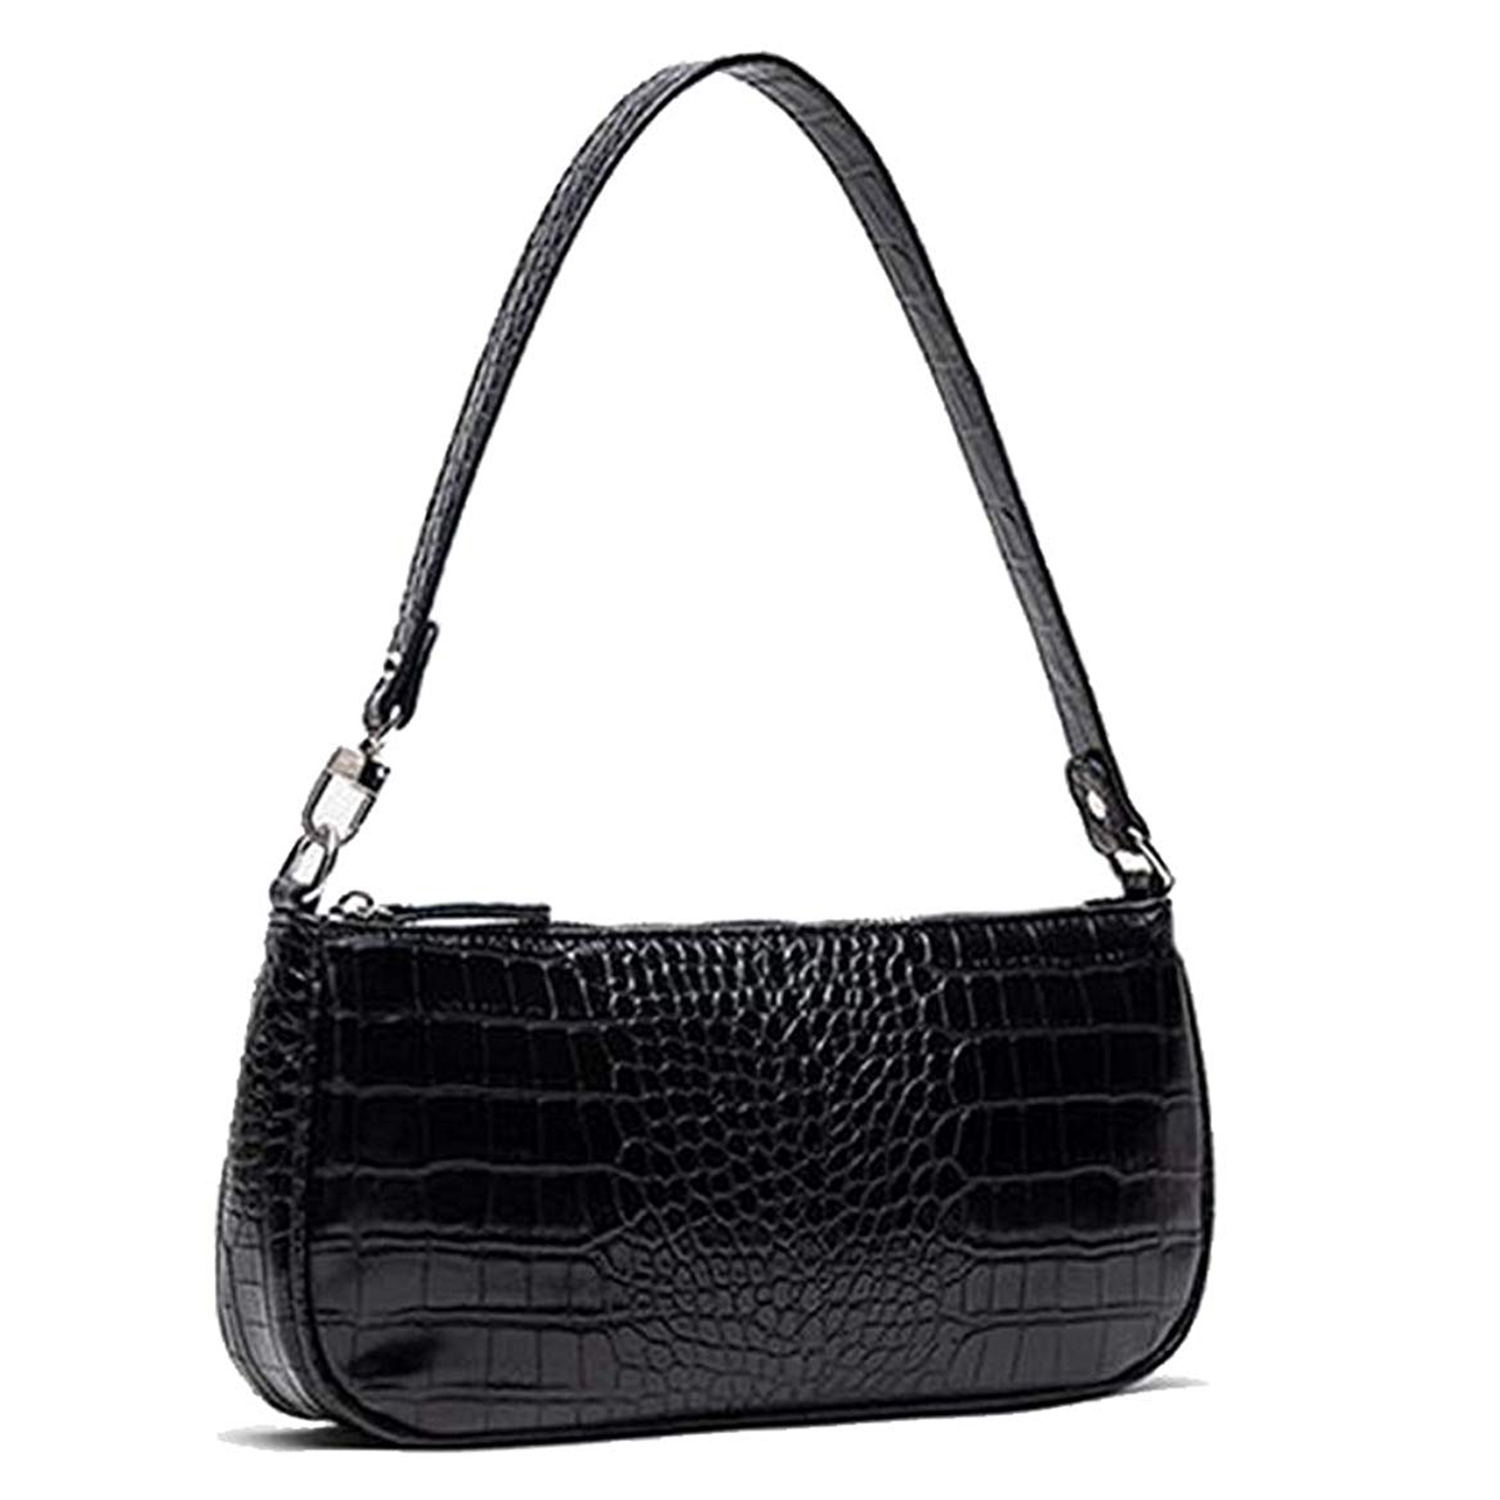 Barabum Retro Classic Crocodile Pattern Clutch Black